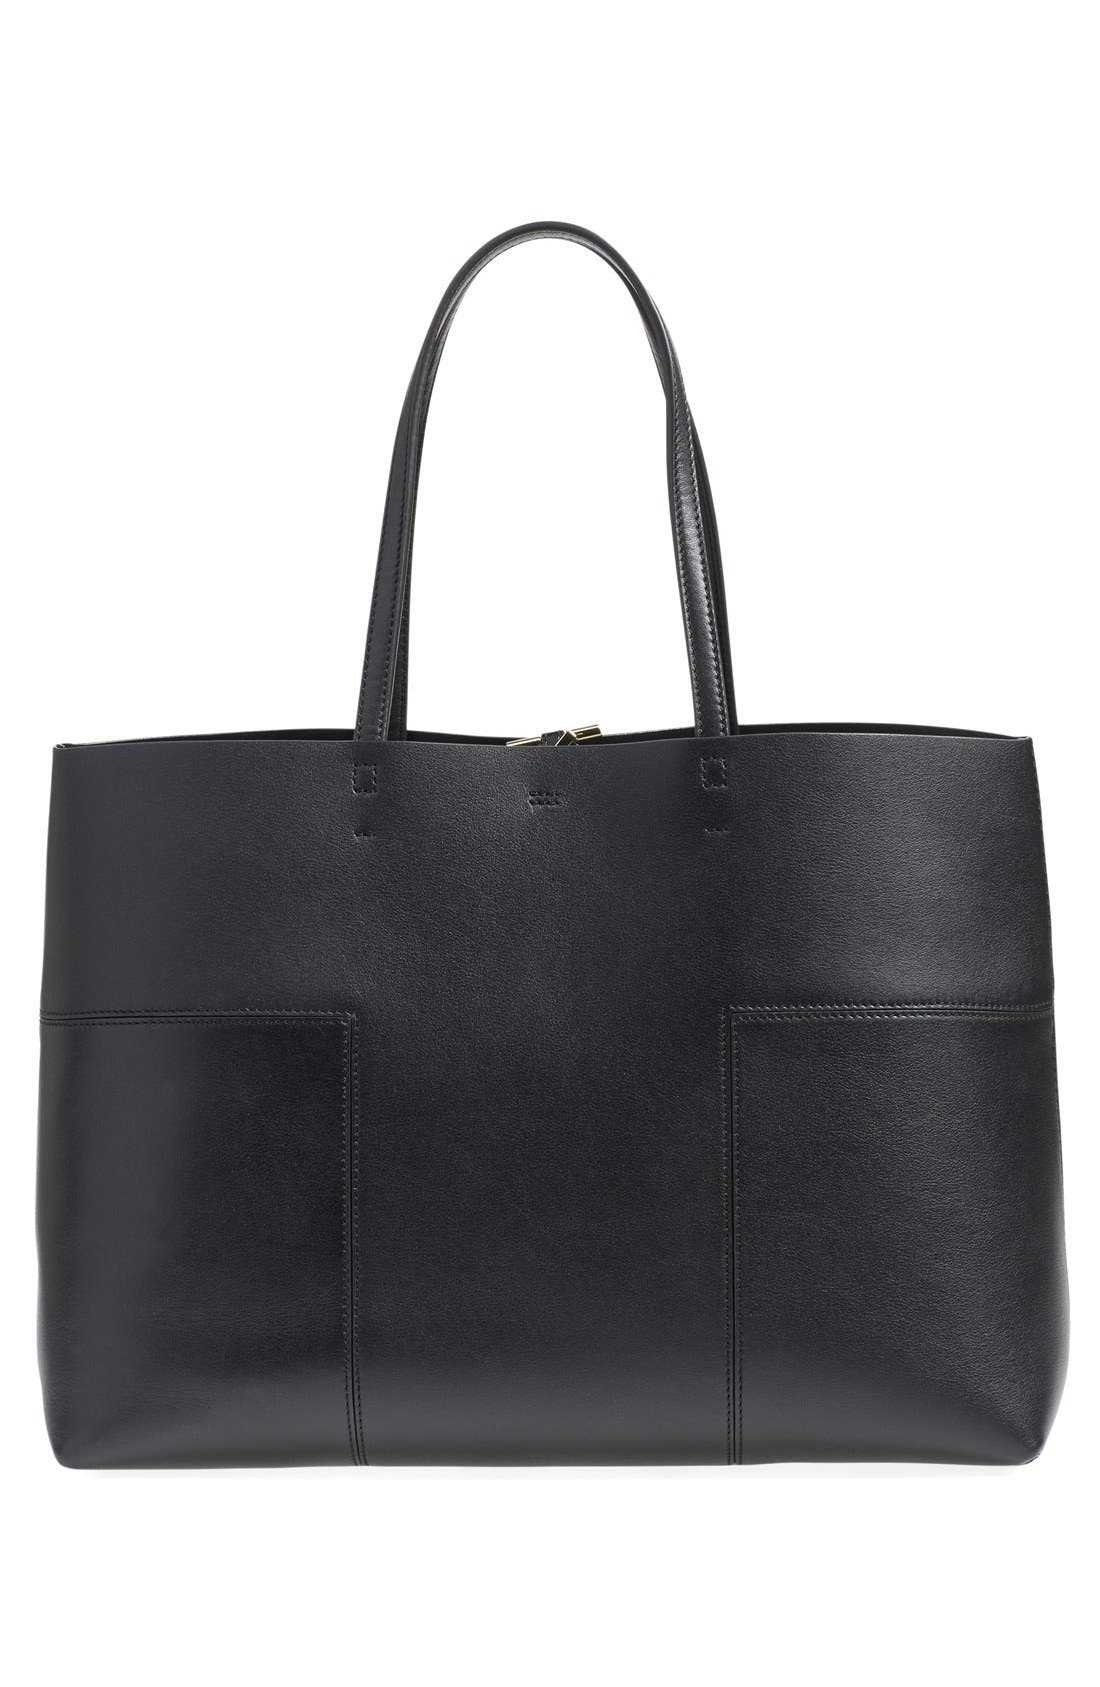 'Block-T' Leather Tote,                             Alternate thumbnail 3, color,                             001